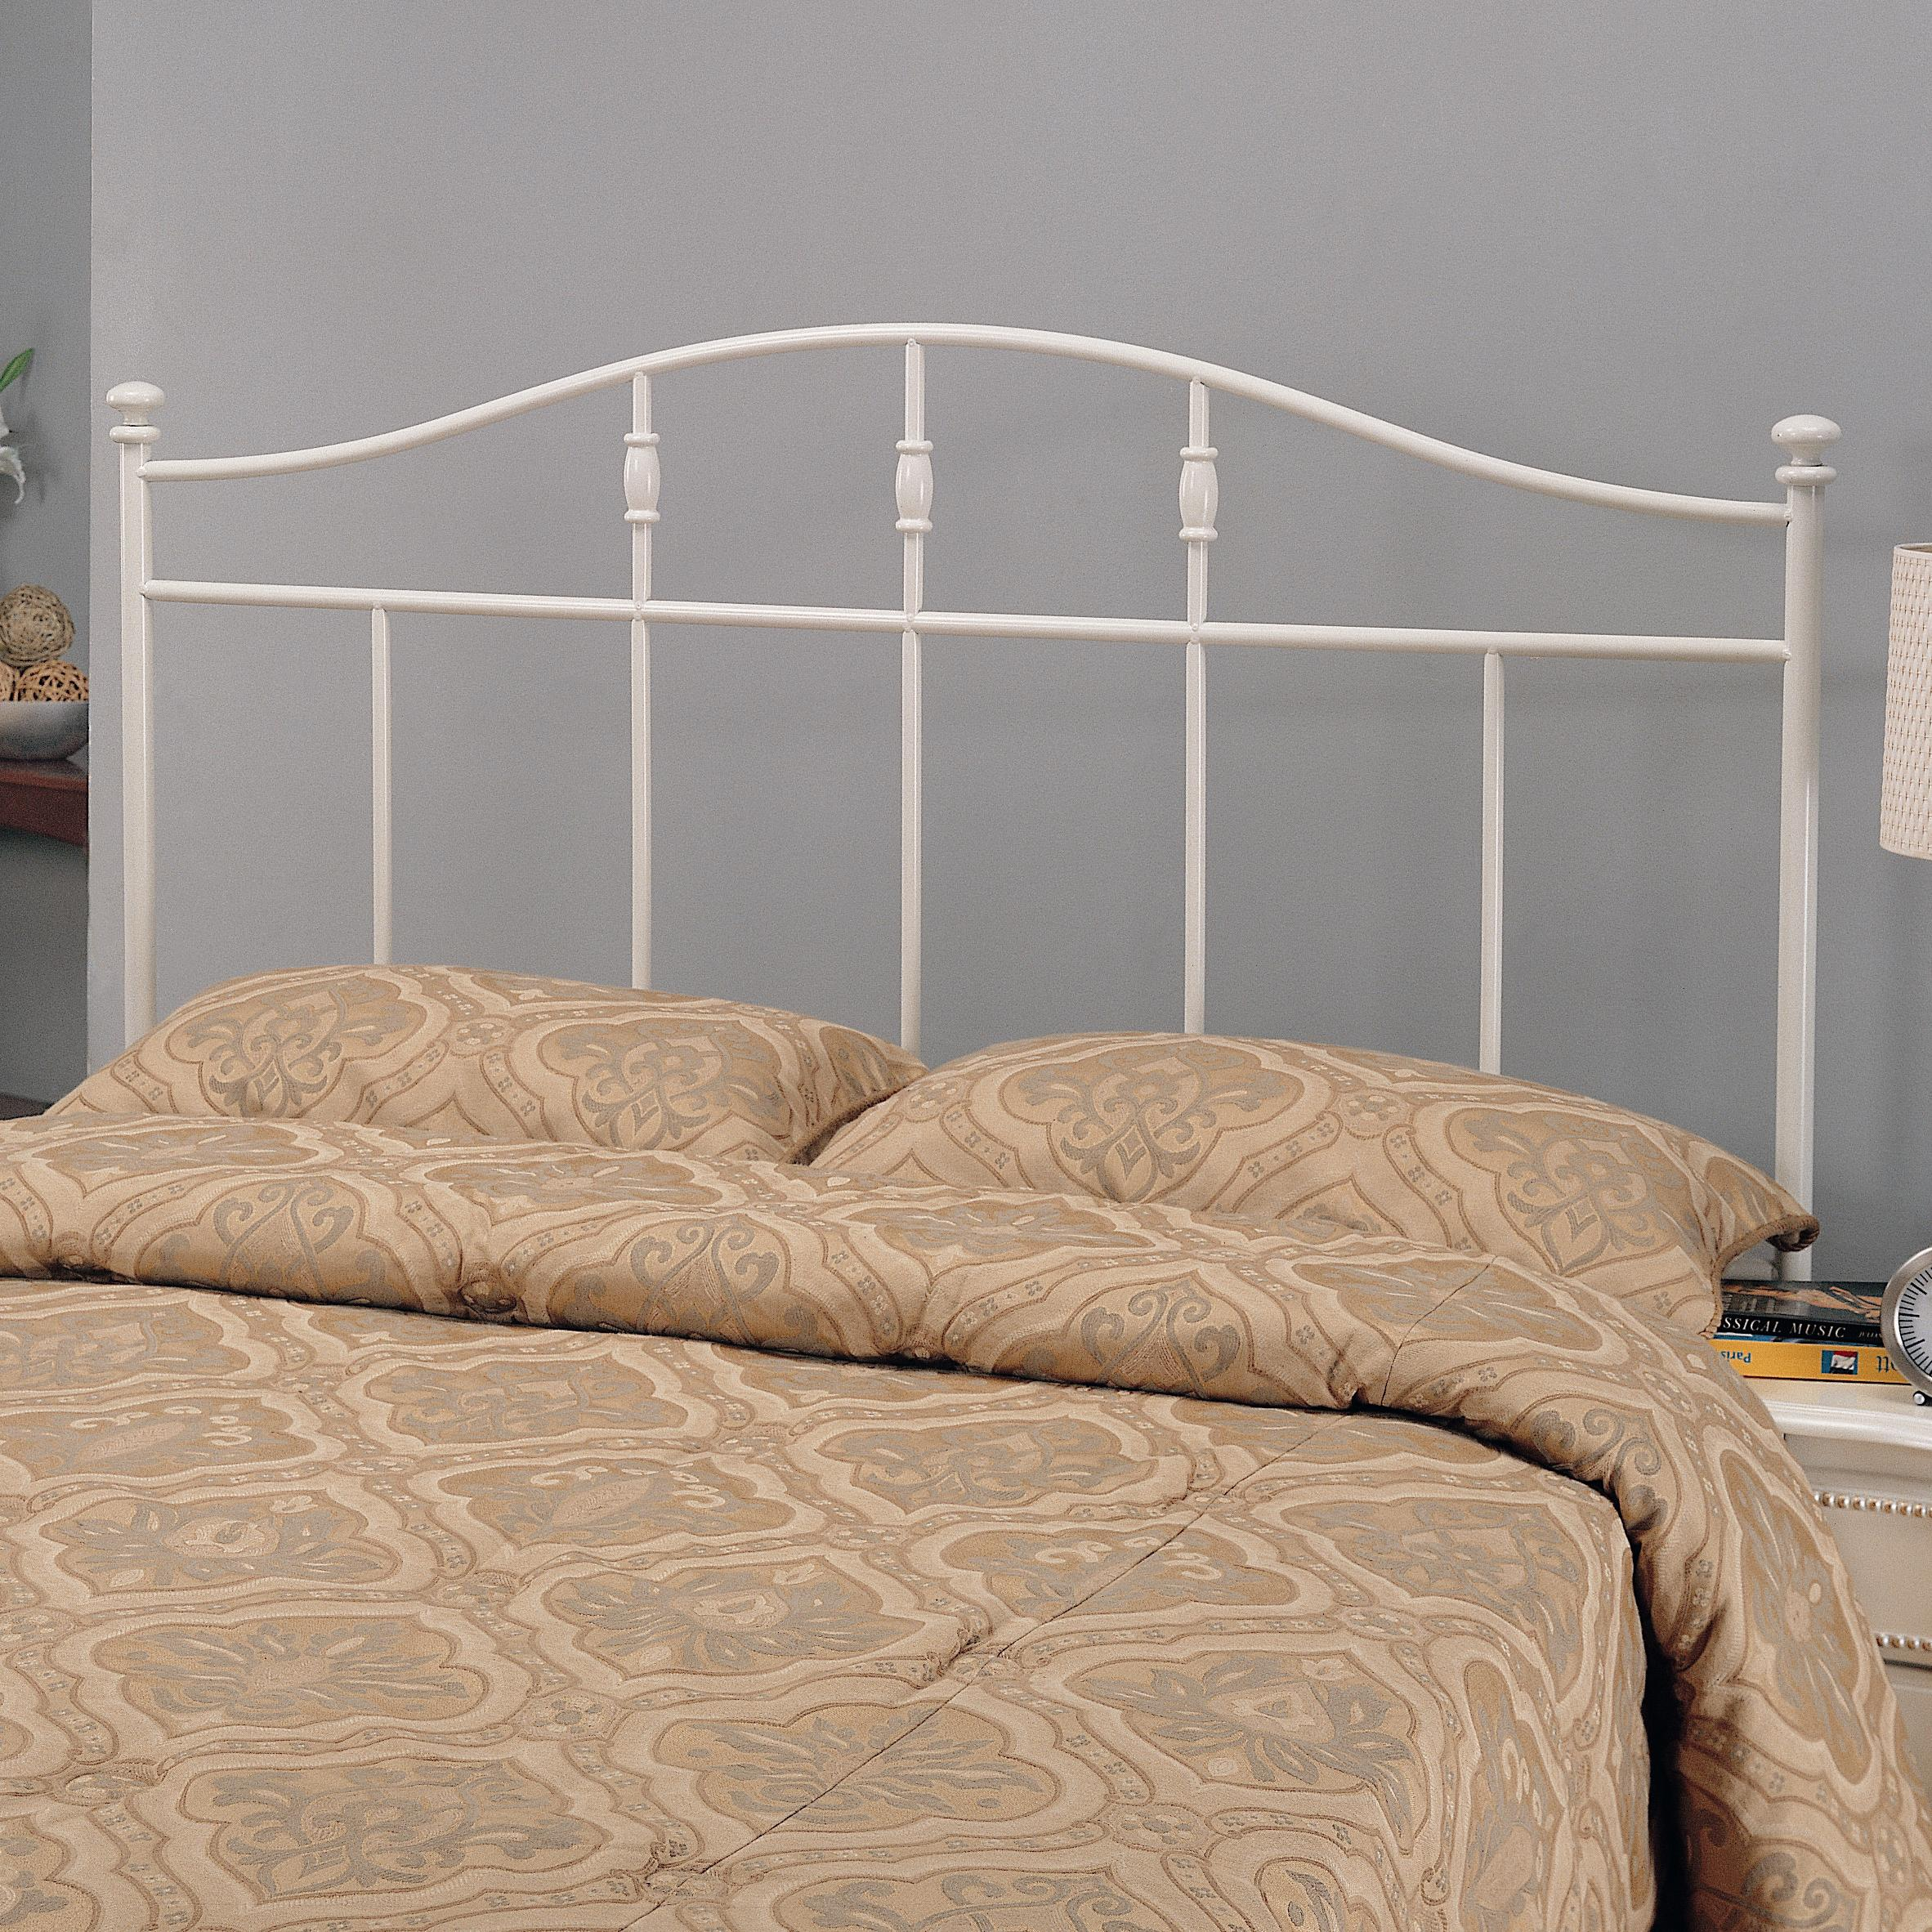 Iron Beds and Headboards Full/Queen Metal Headboard by Coaster at Northeast Factory Direct